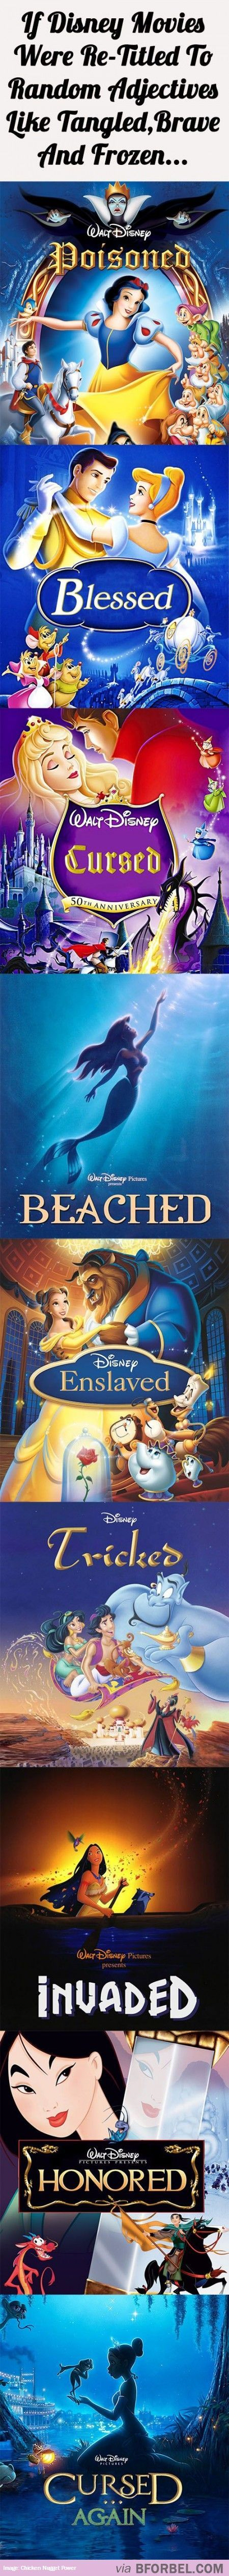 If Disney Movies Were Retitled To Random Adjectives Like Frozen And Tangled